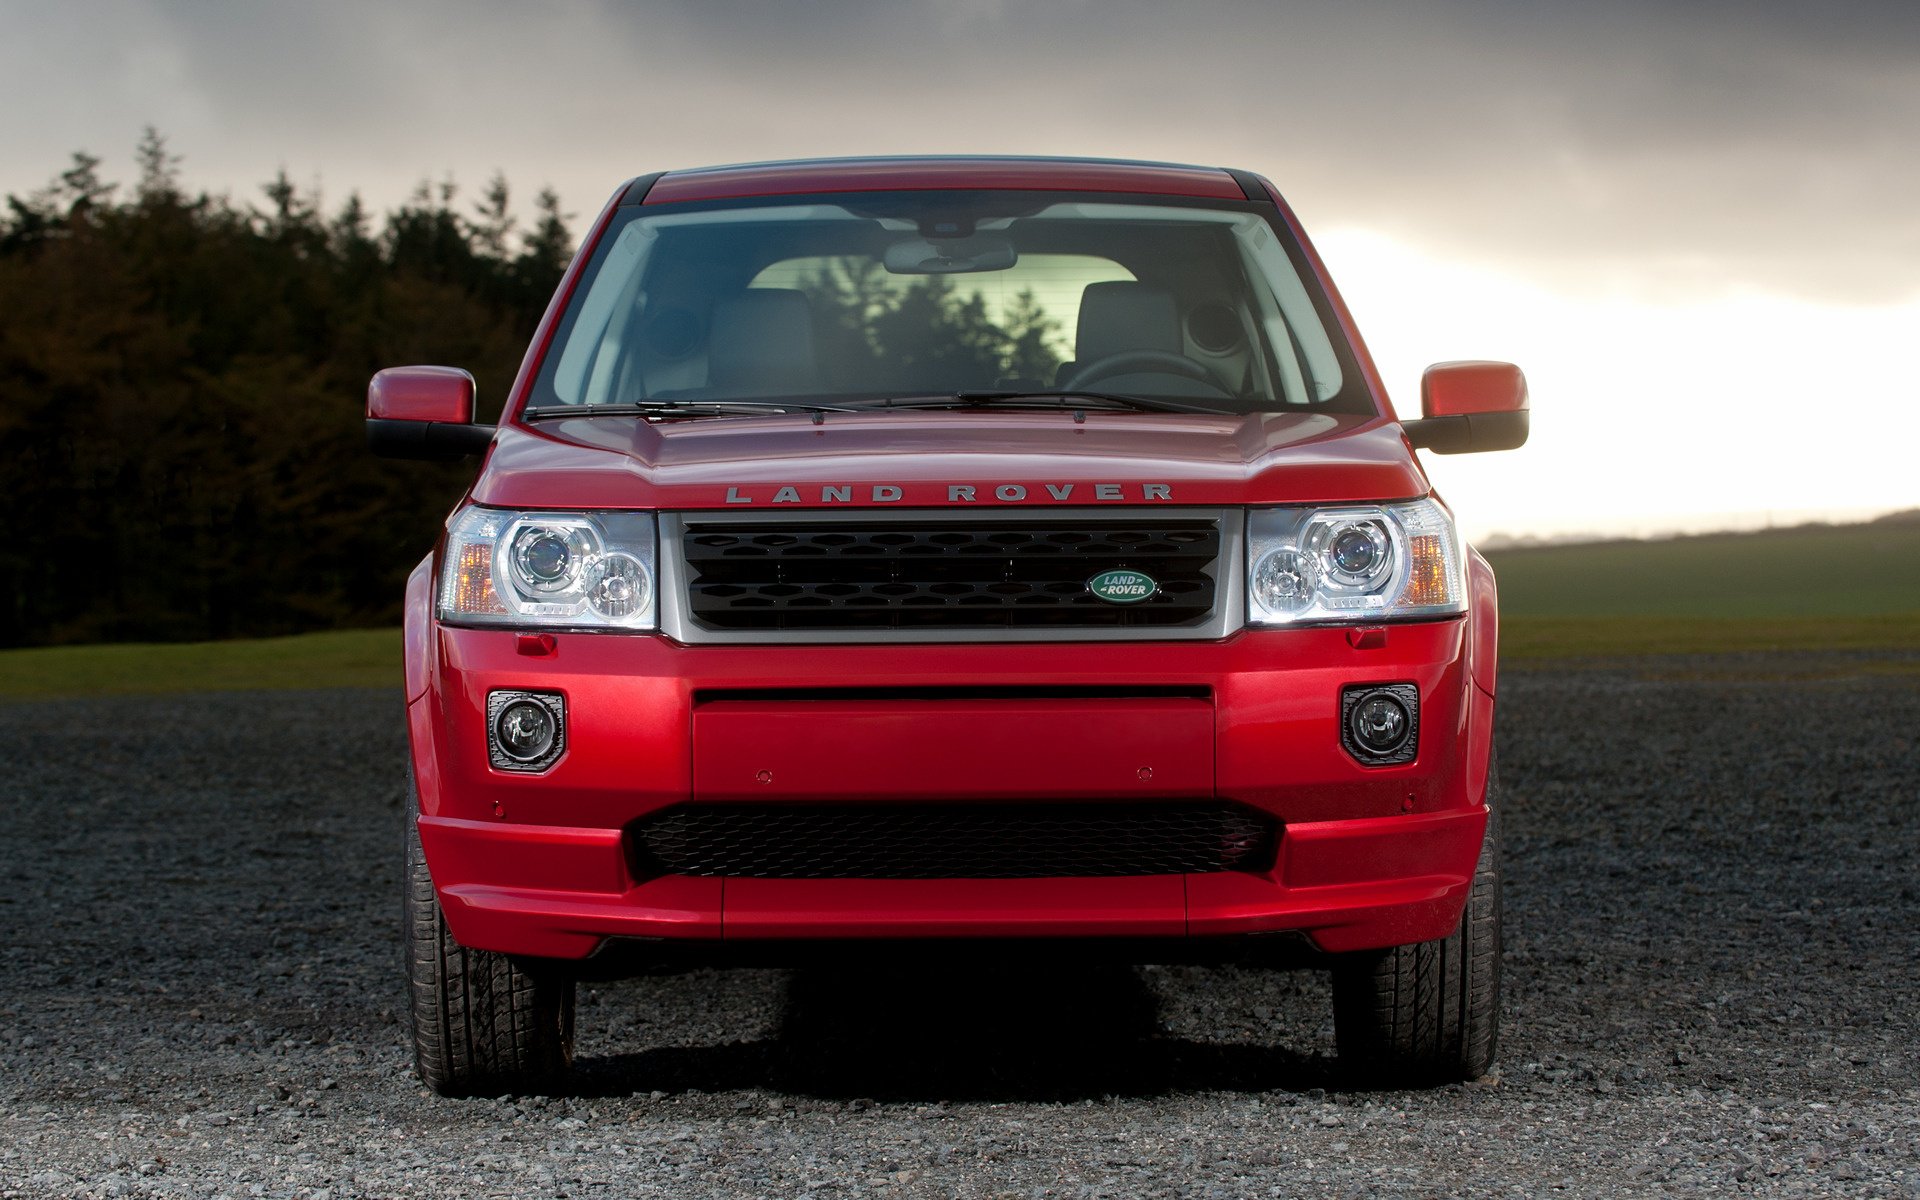 Land Rover Freelander 2 Sport Limited Edition (2011) Wallpapers and ...